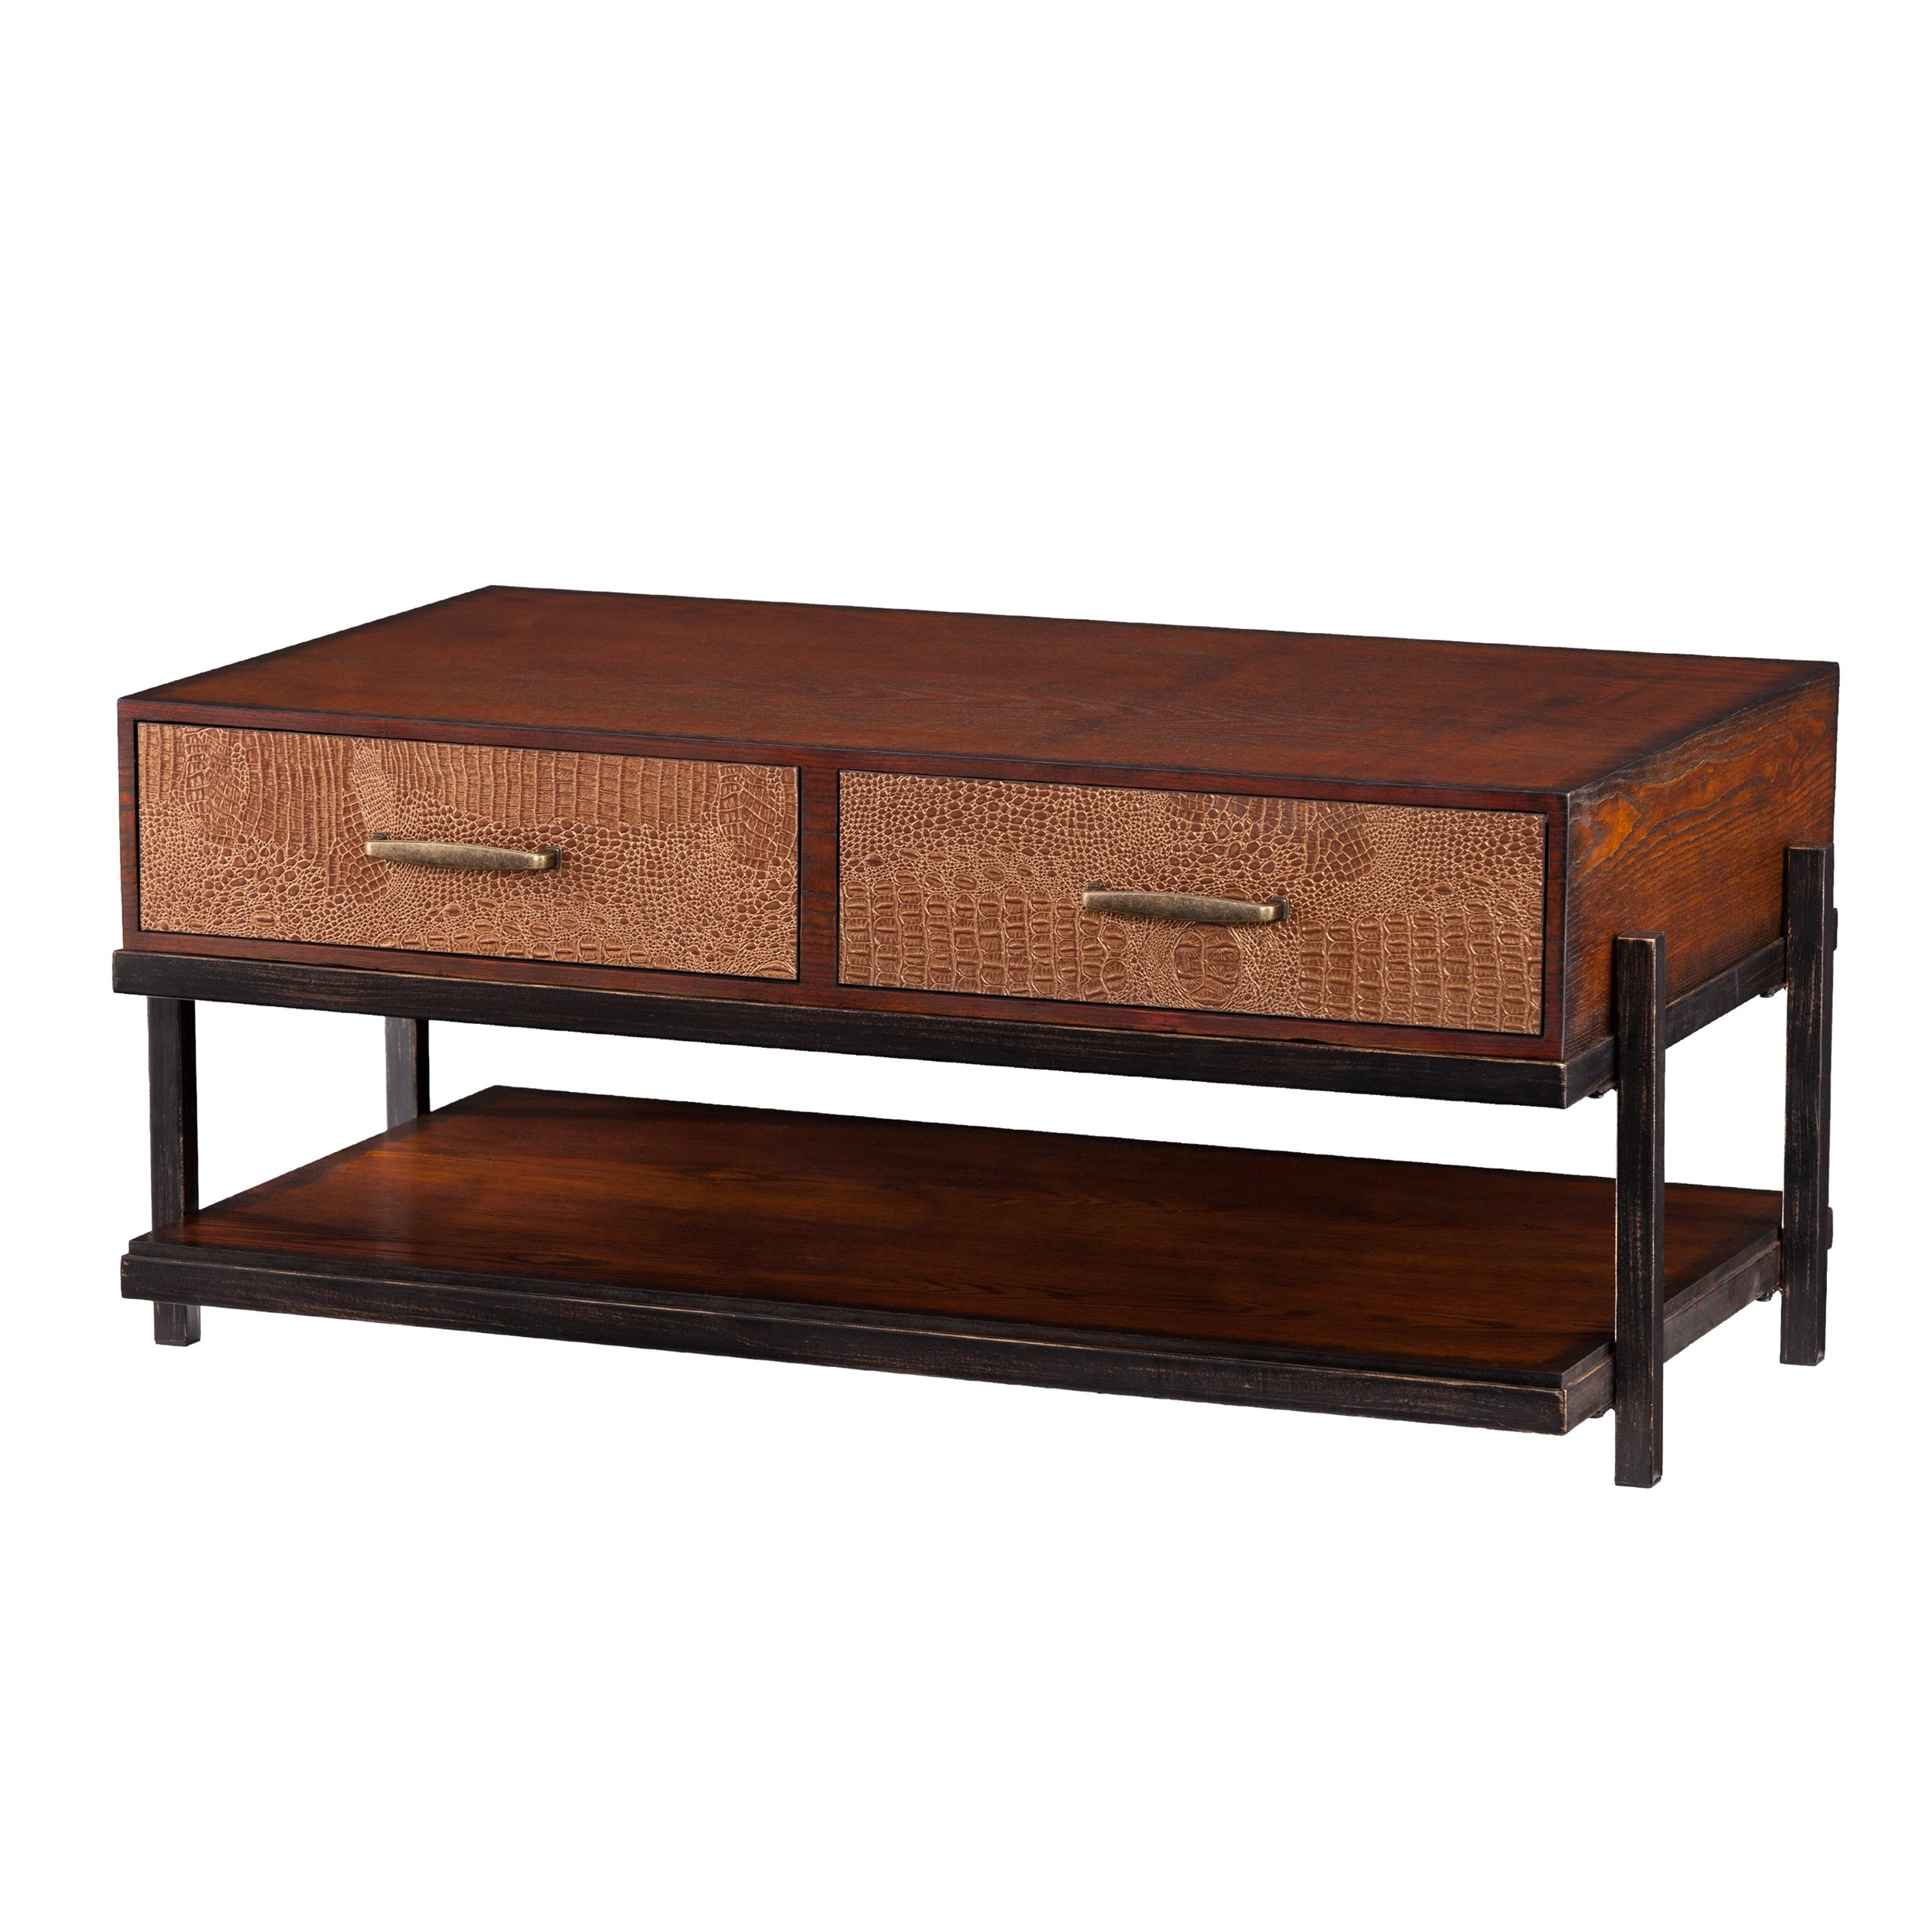 Widely Used Palmer Storage Cocktail Tables For Shop Harper Blvd Palmer Cocktail/ Coffee Table – Free Shipping Today (View 19 of 20)